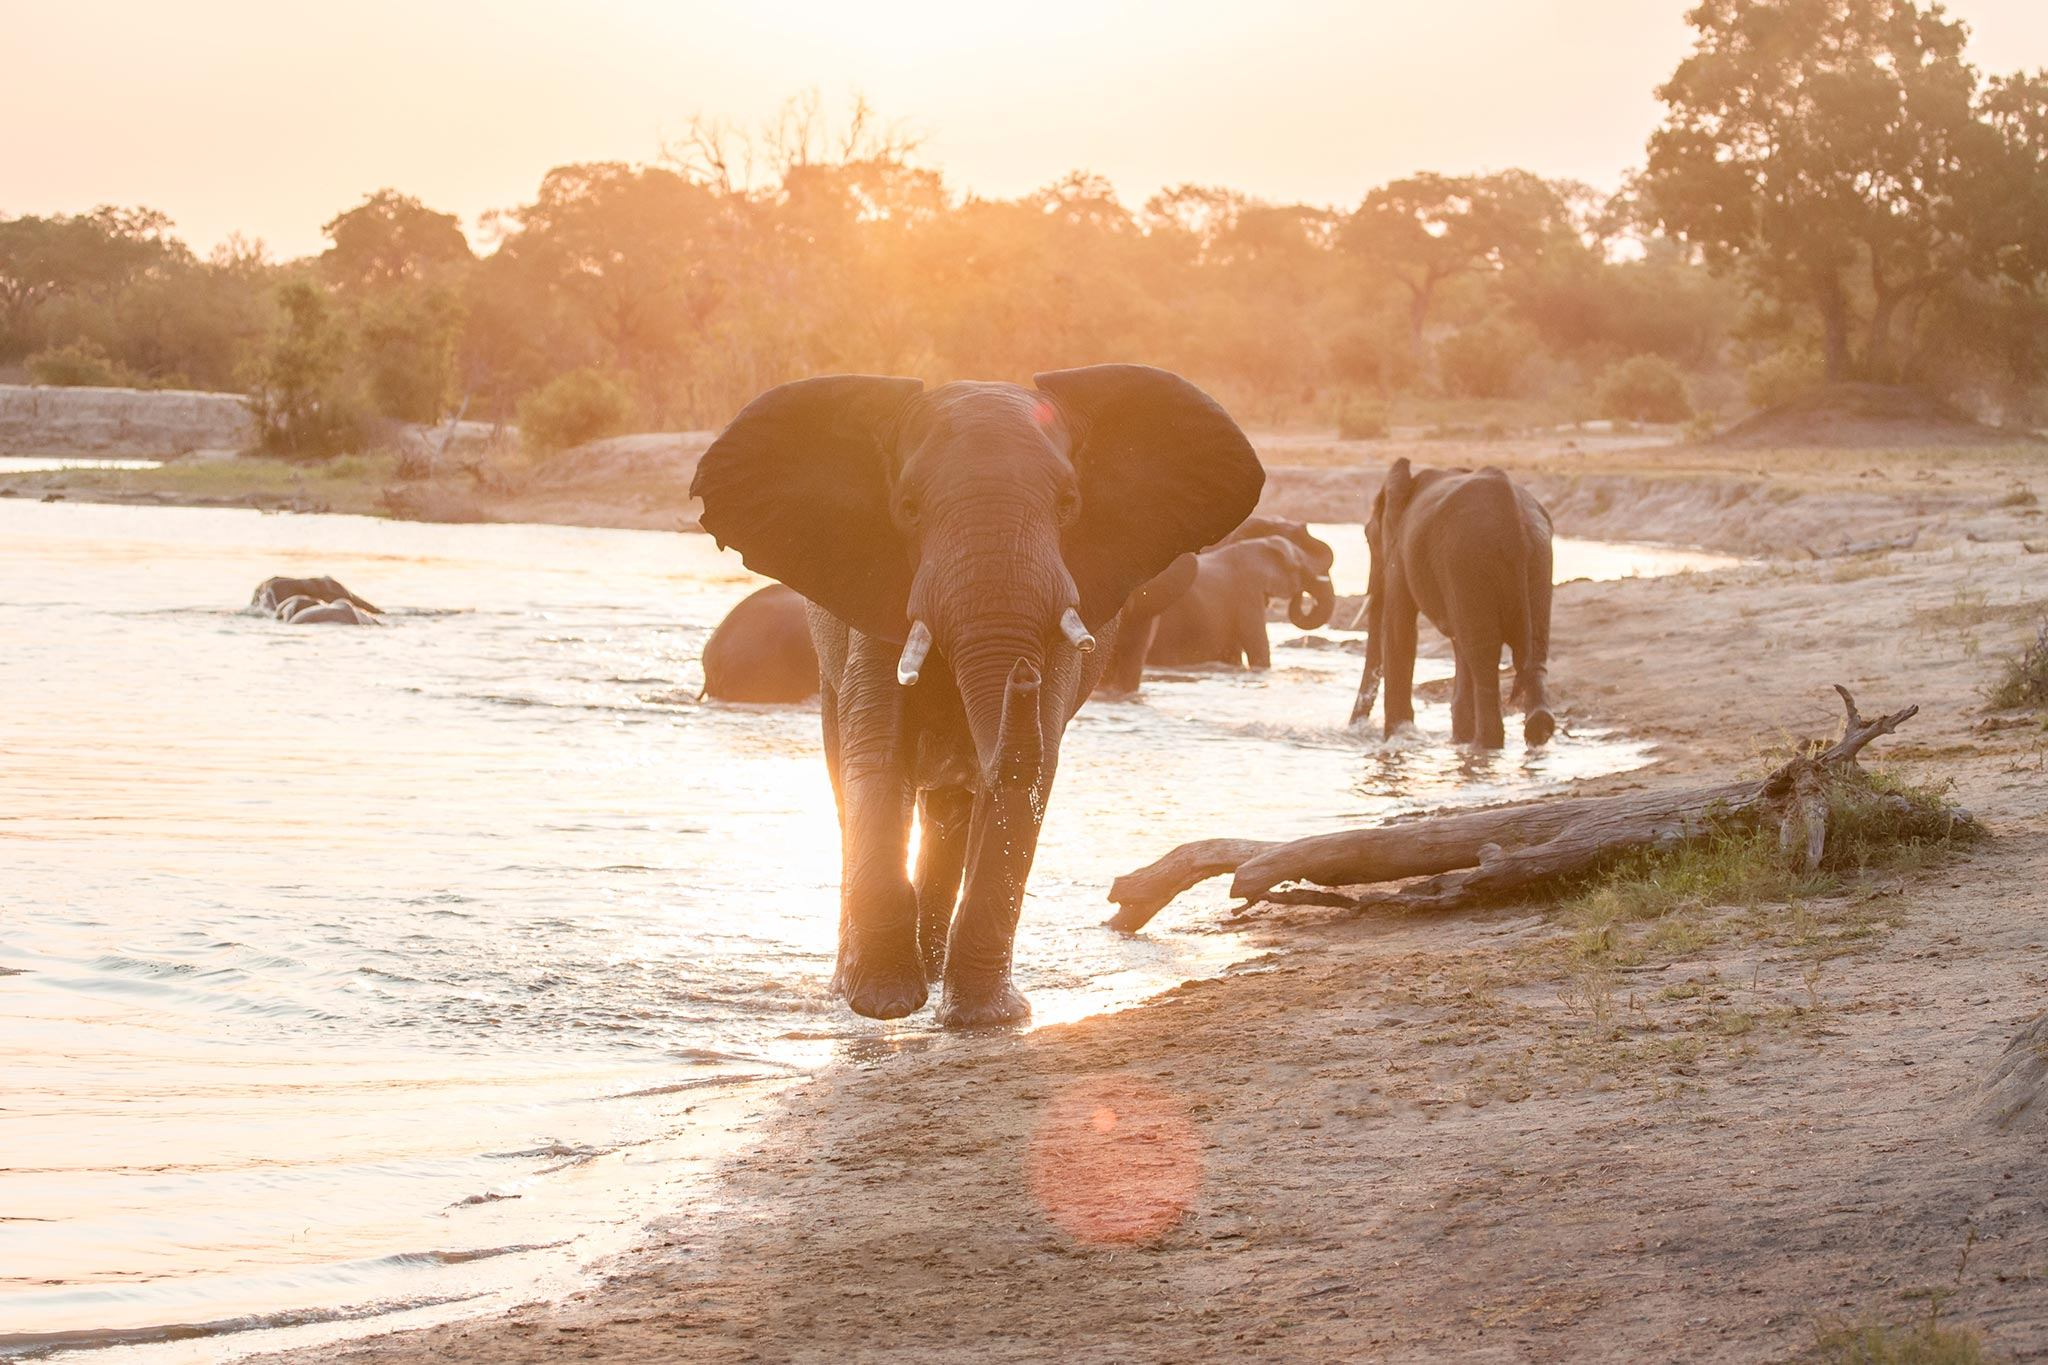 Majestic elephant bathing in the water at sunrise